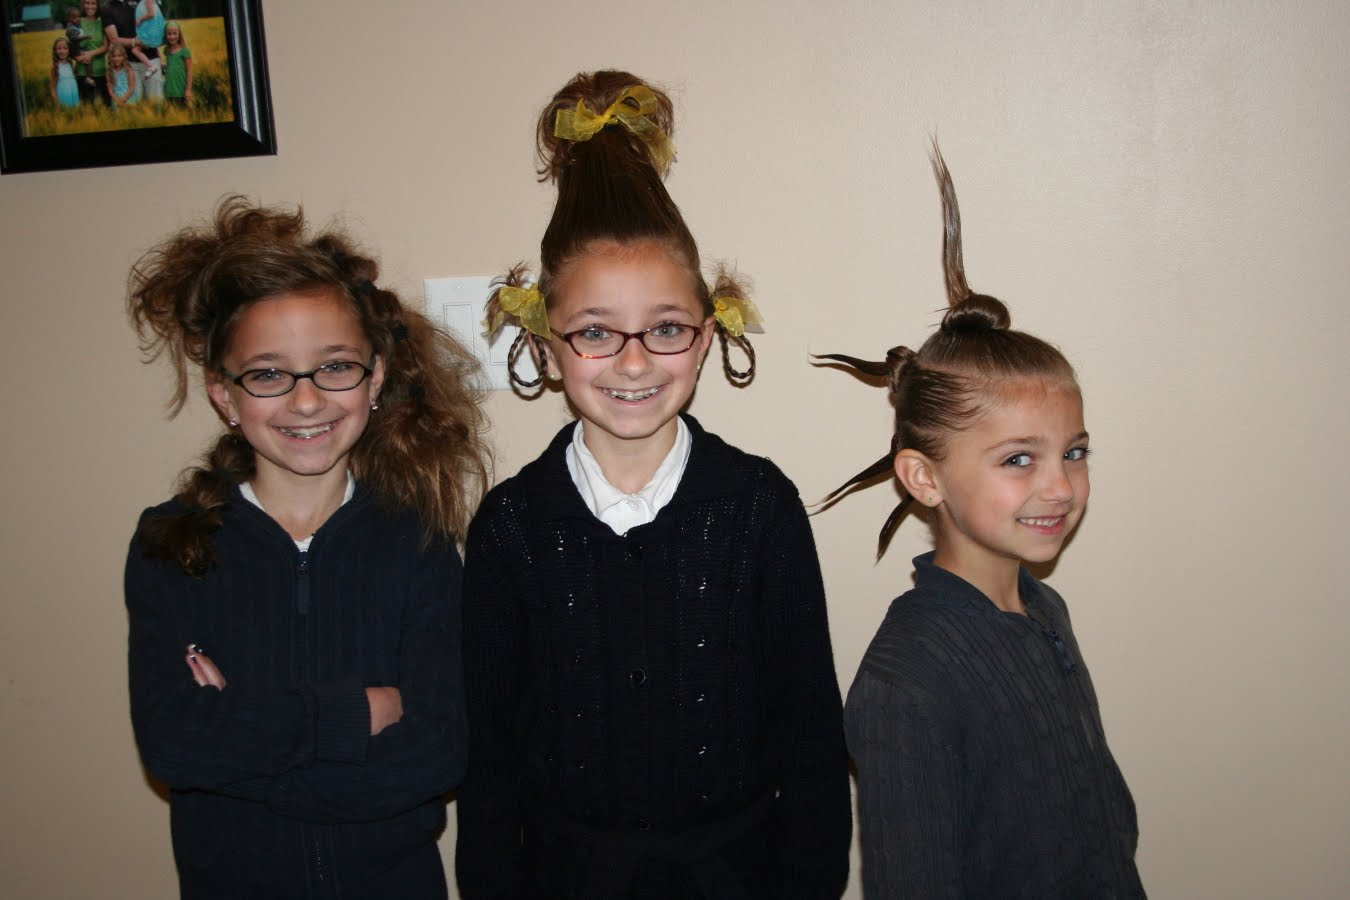 Our Crazy Hair Day Cute Girls Hairstyles